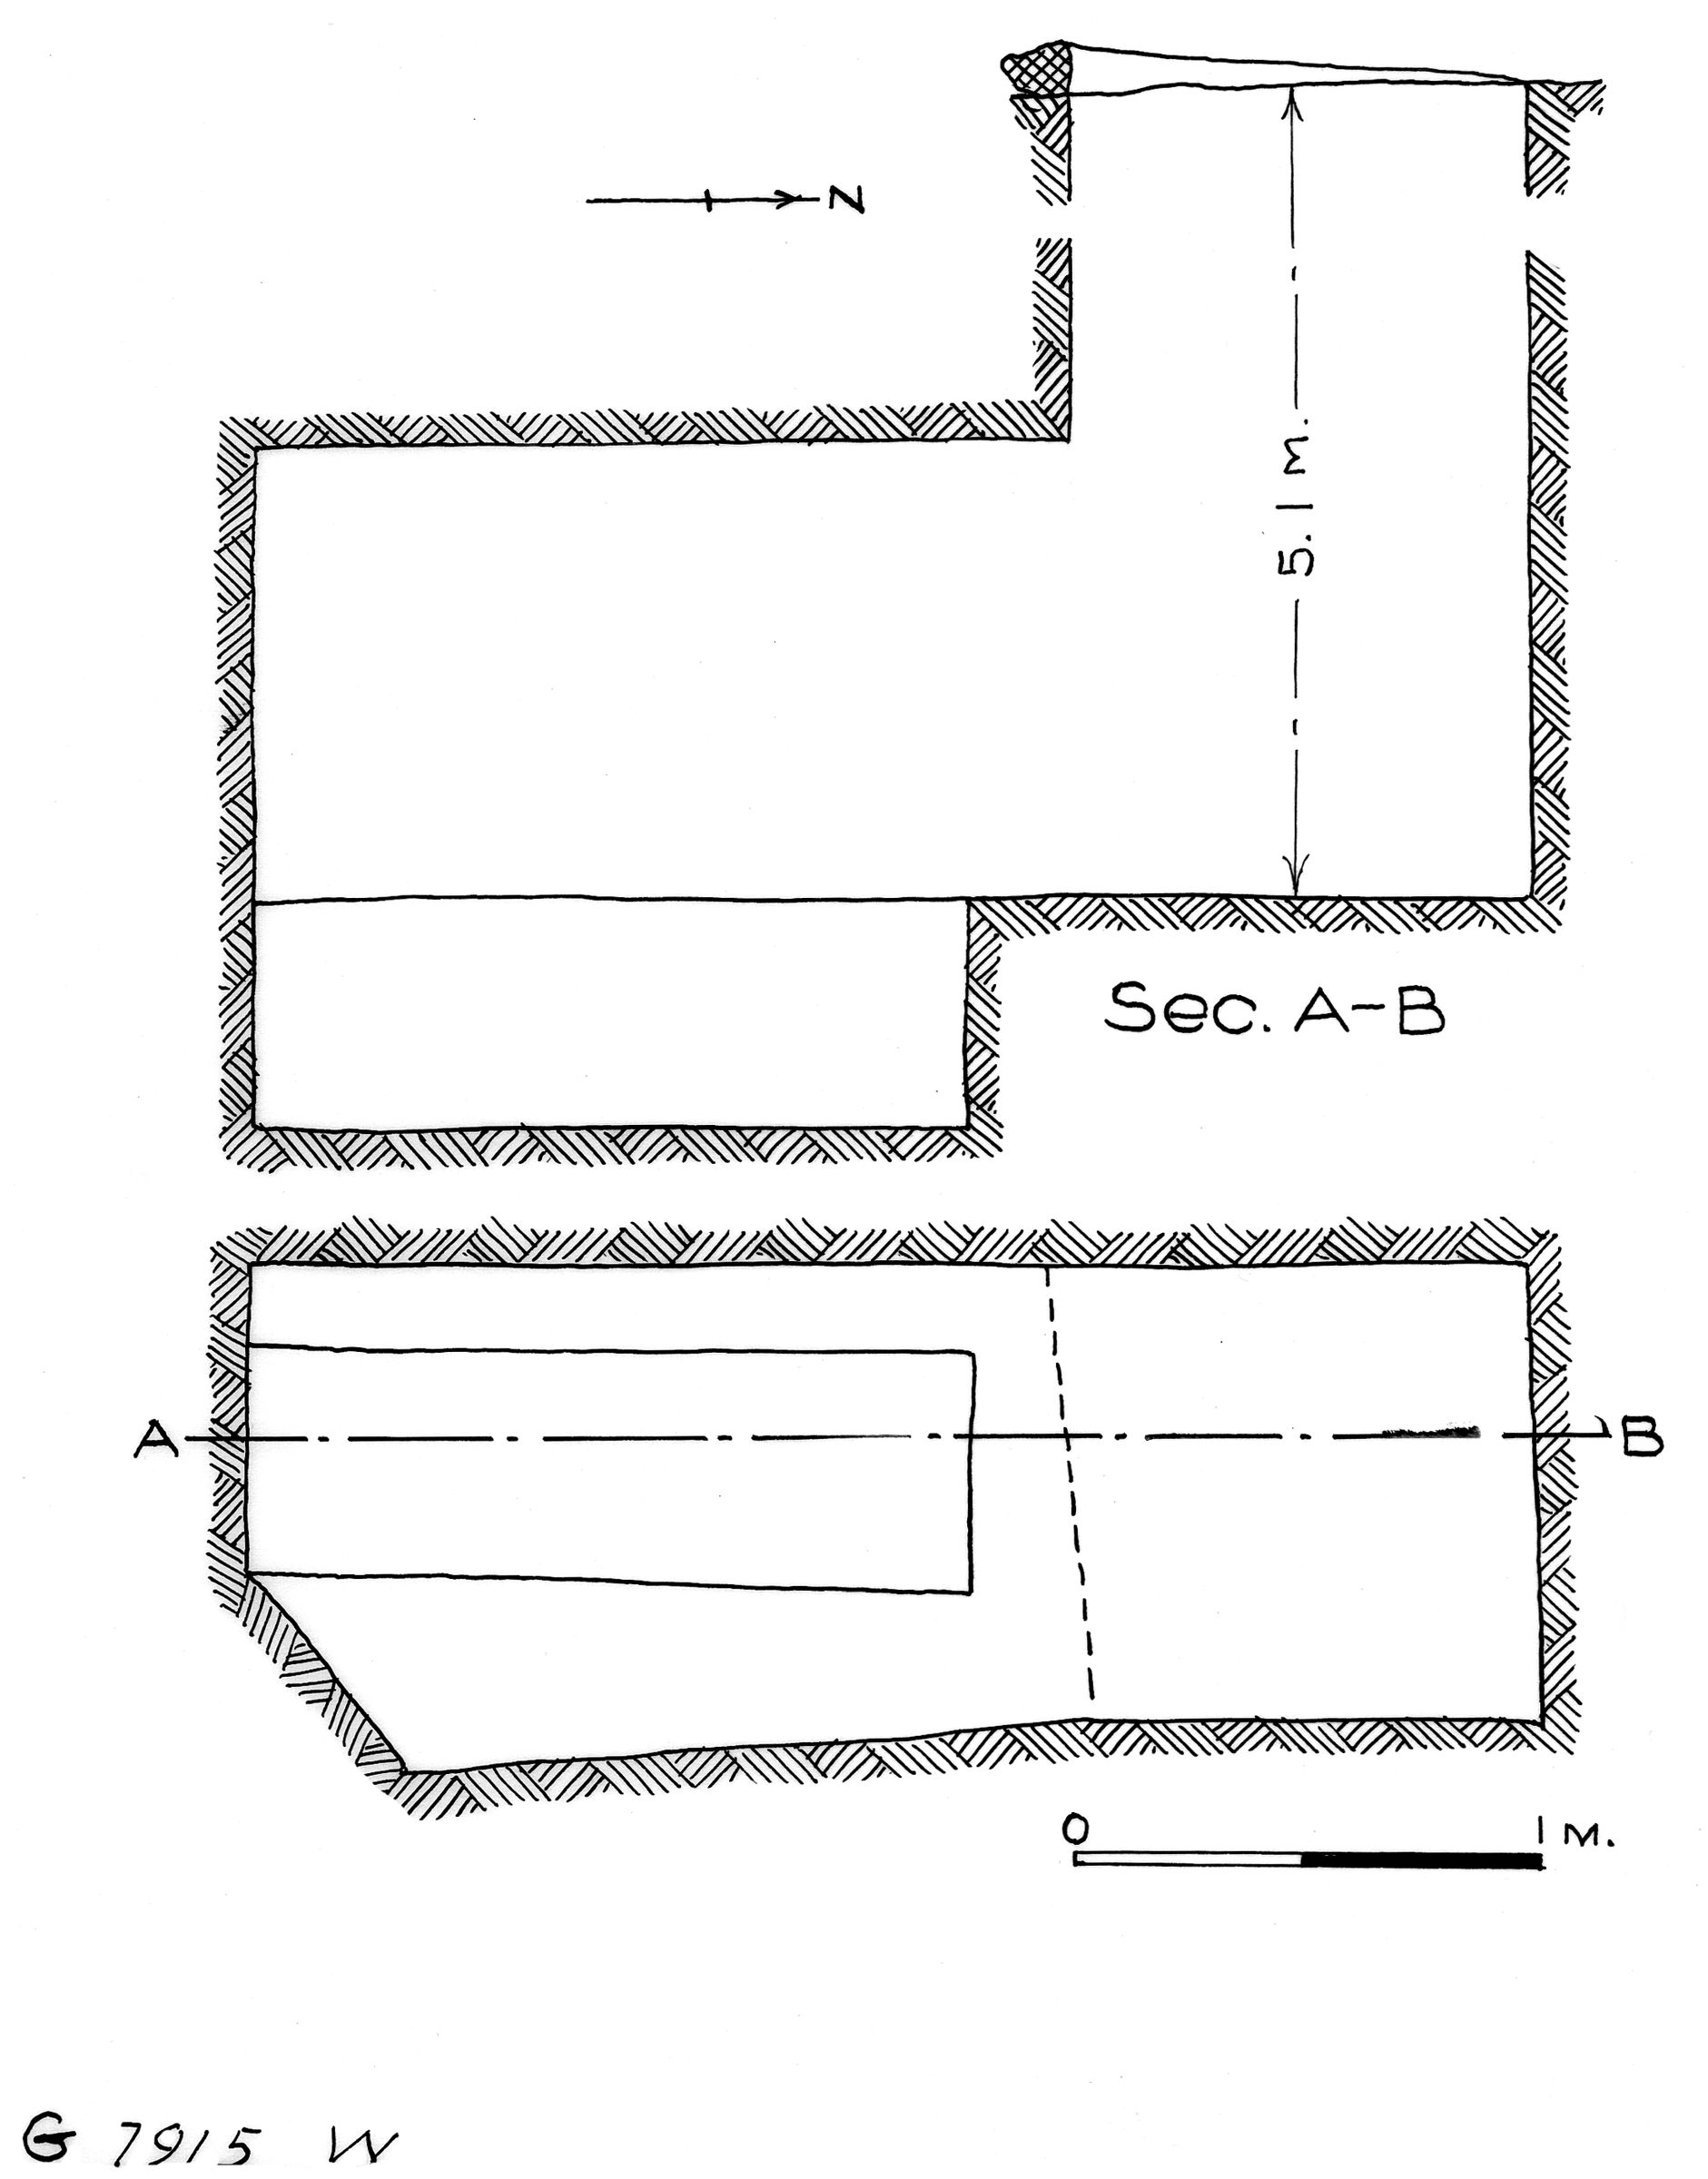 Maps and plans: G 7915, Shaft W